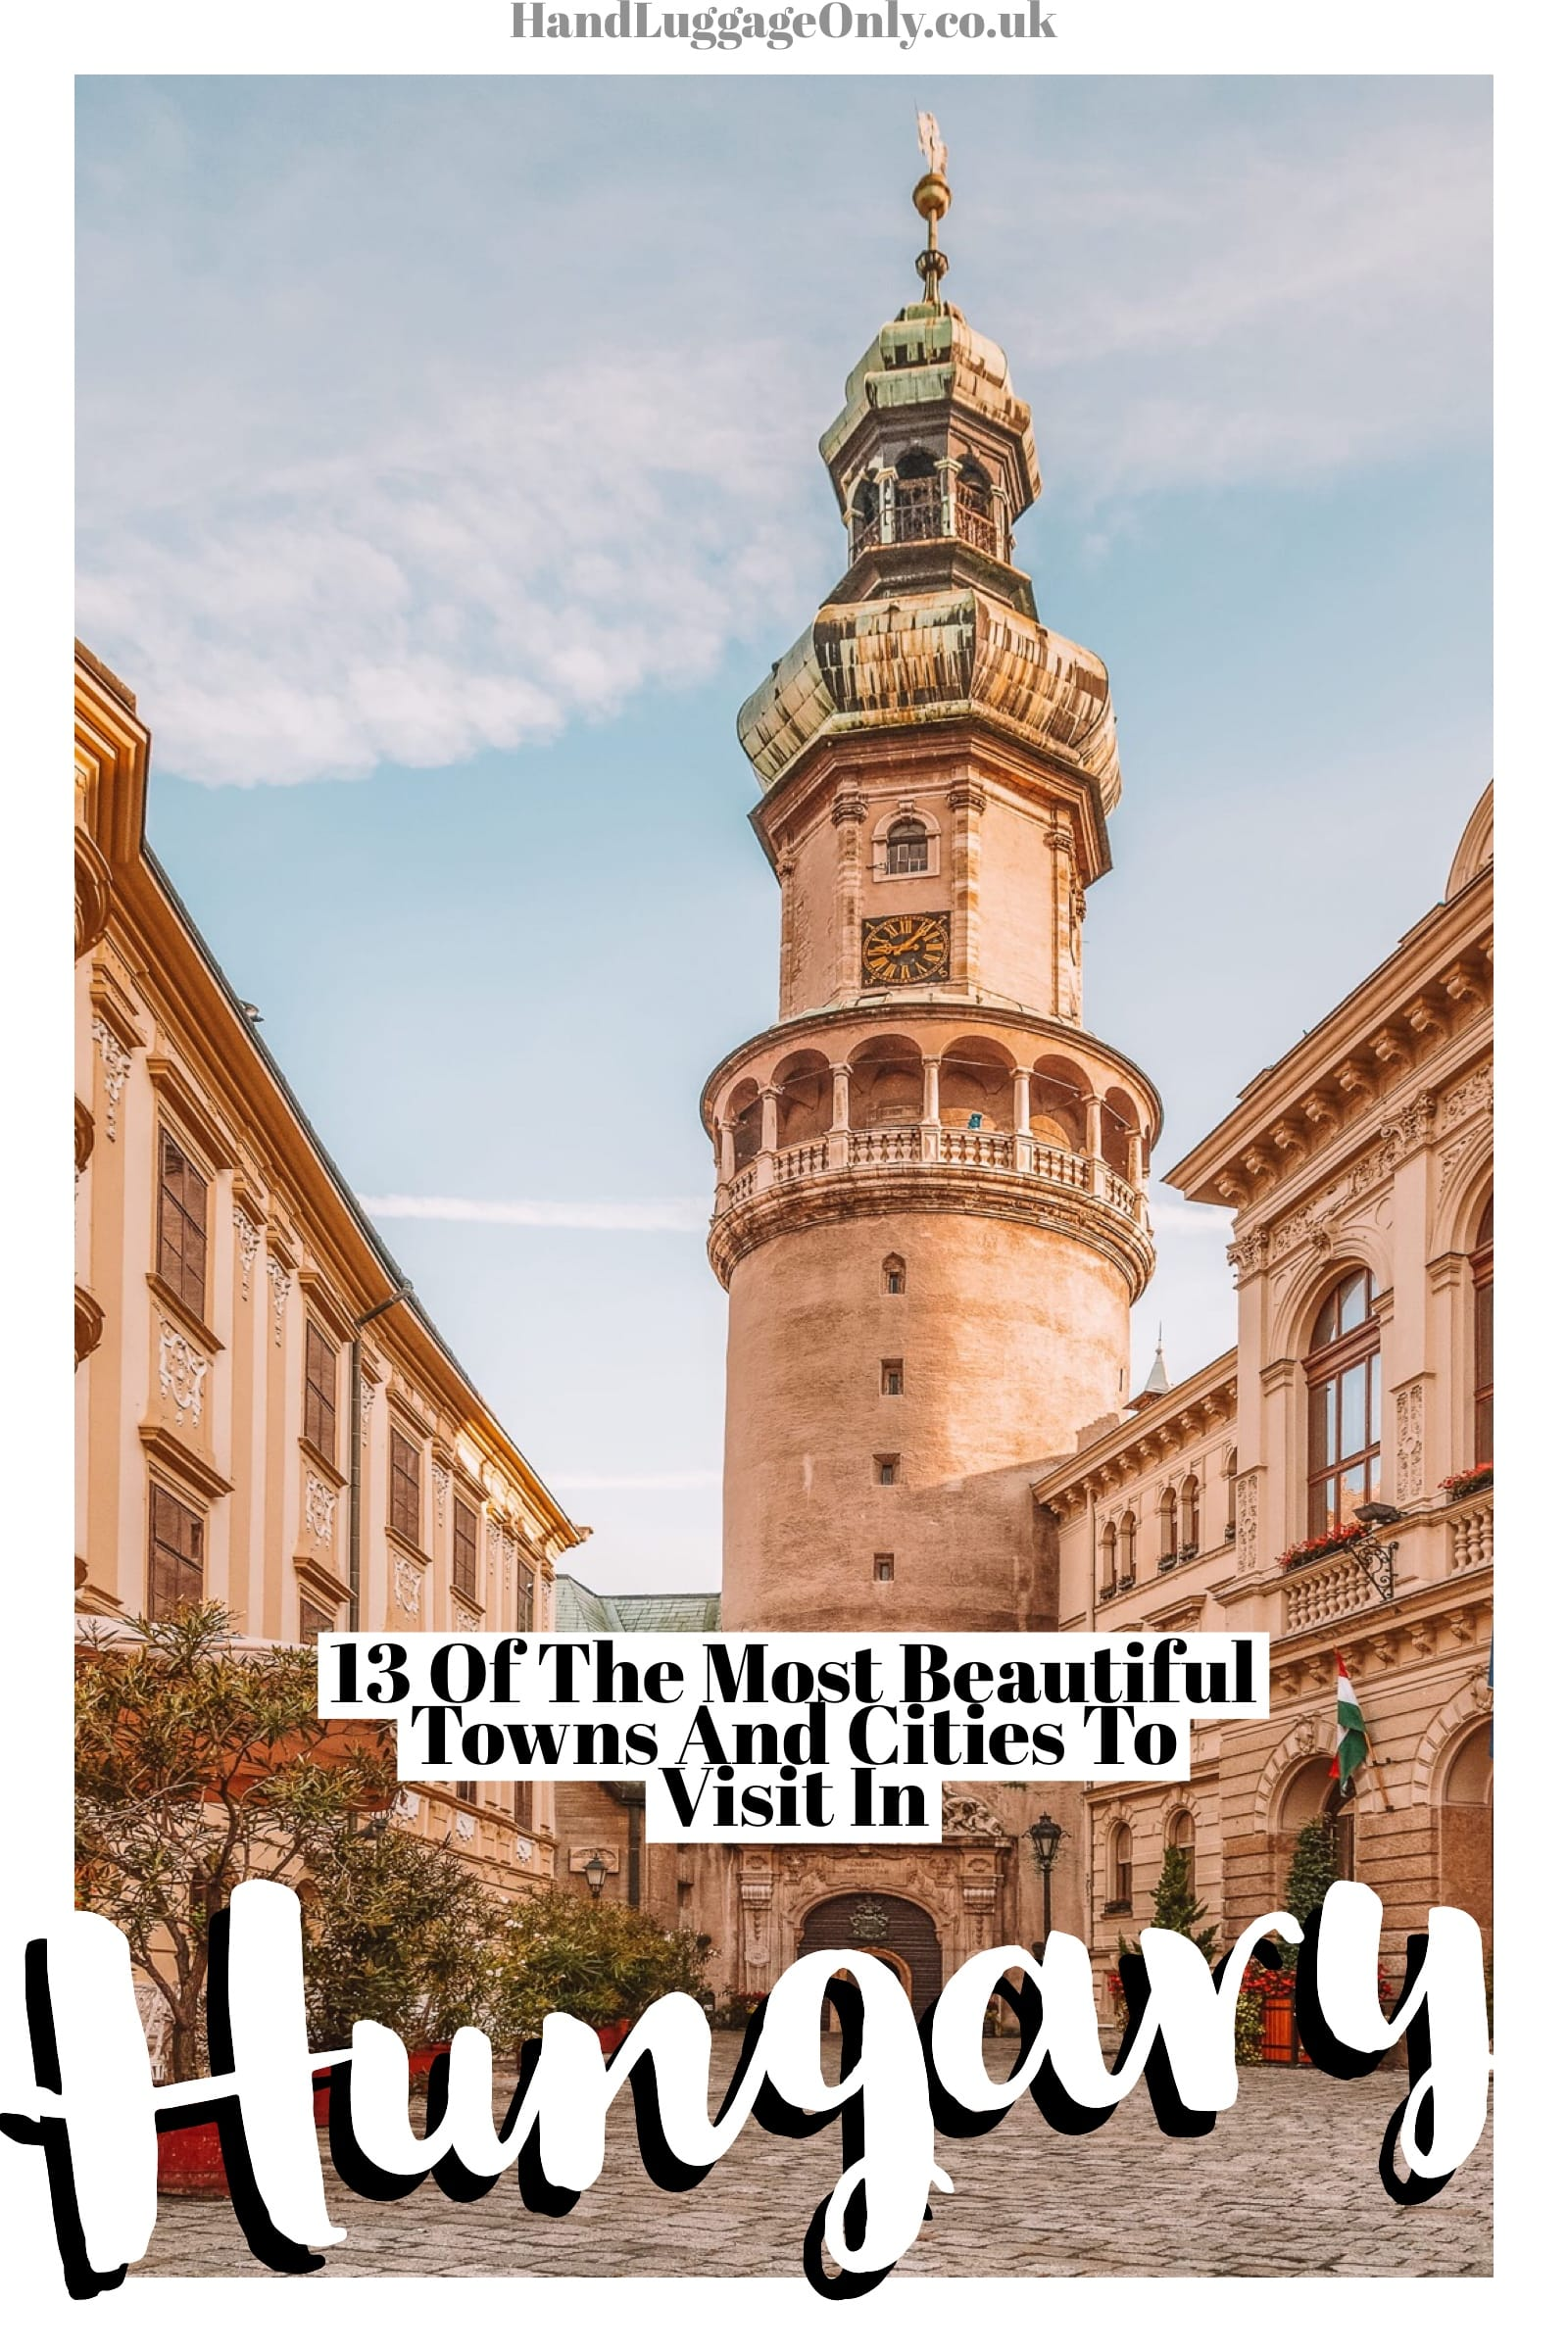 Beautiful Towns And Cities In Hungary To Visit (1)